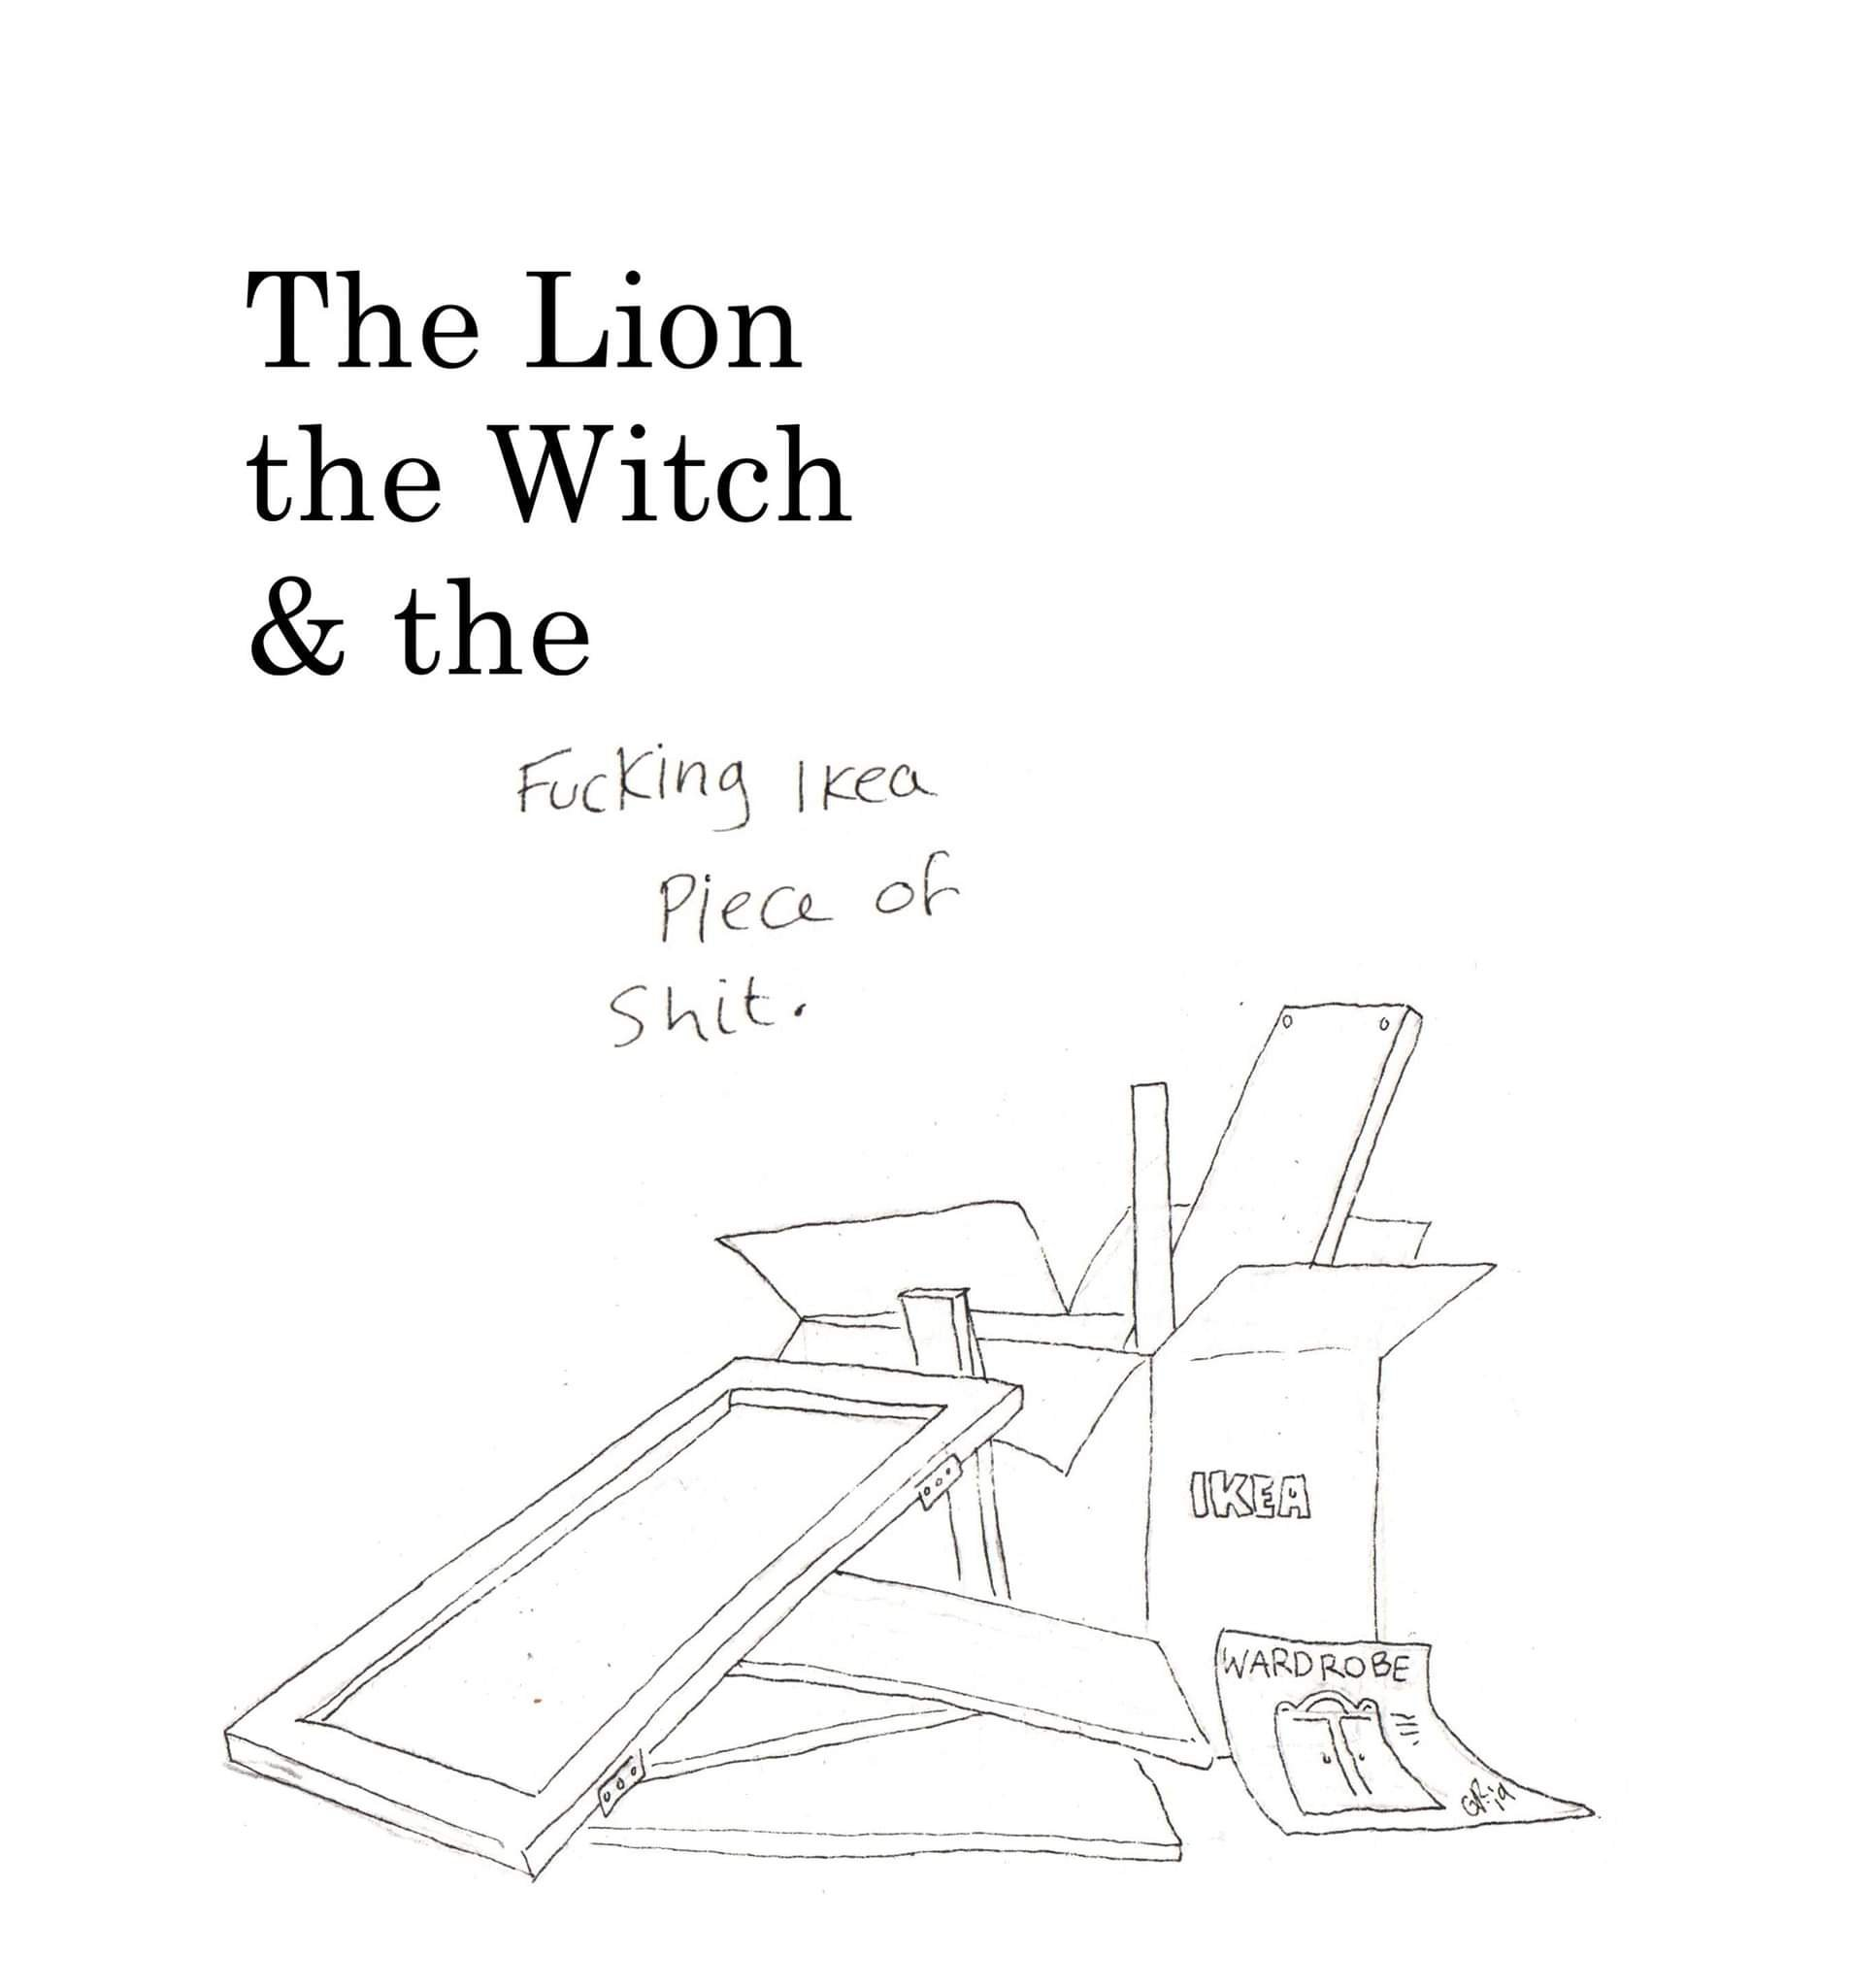 The Lion, the Witch and the Fucking IKEA piece of shit